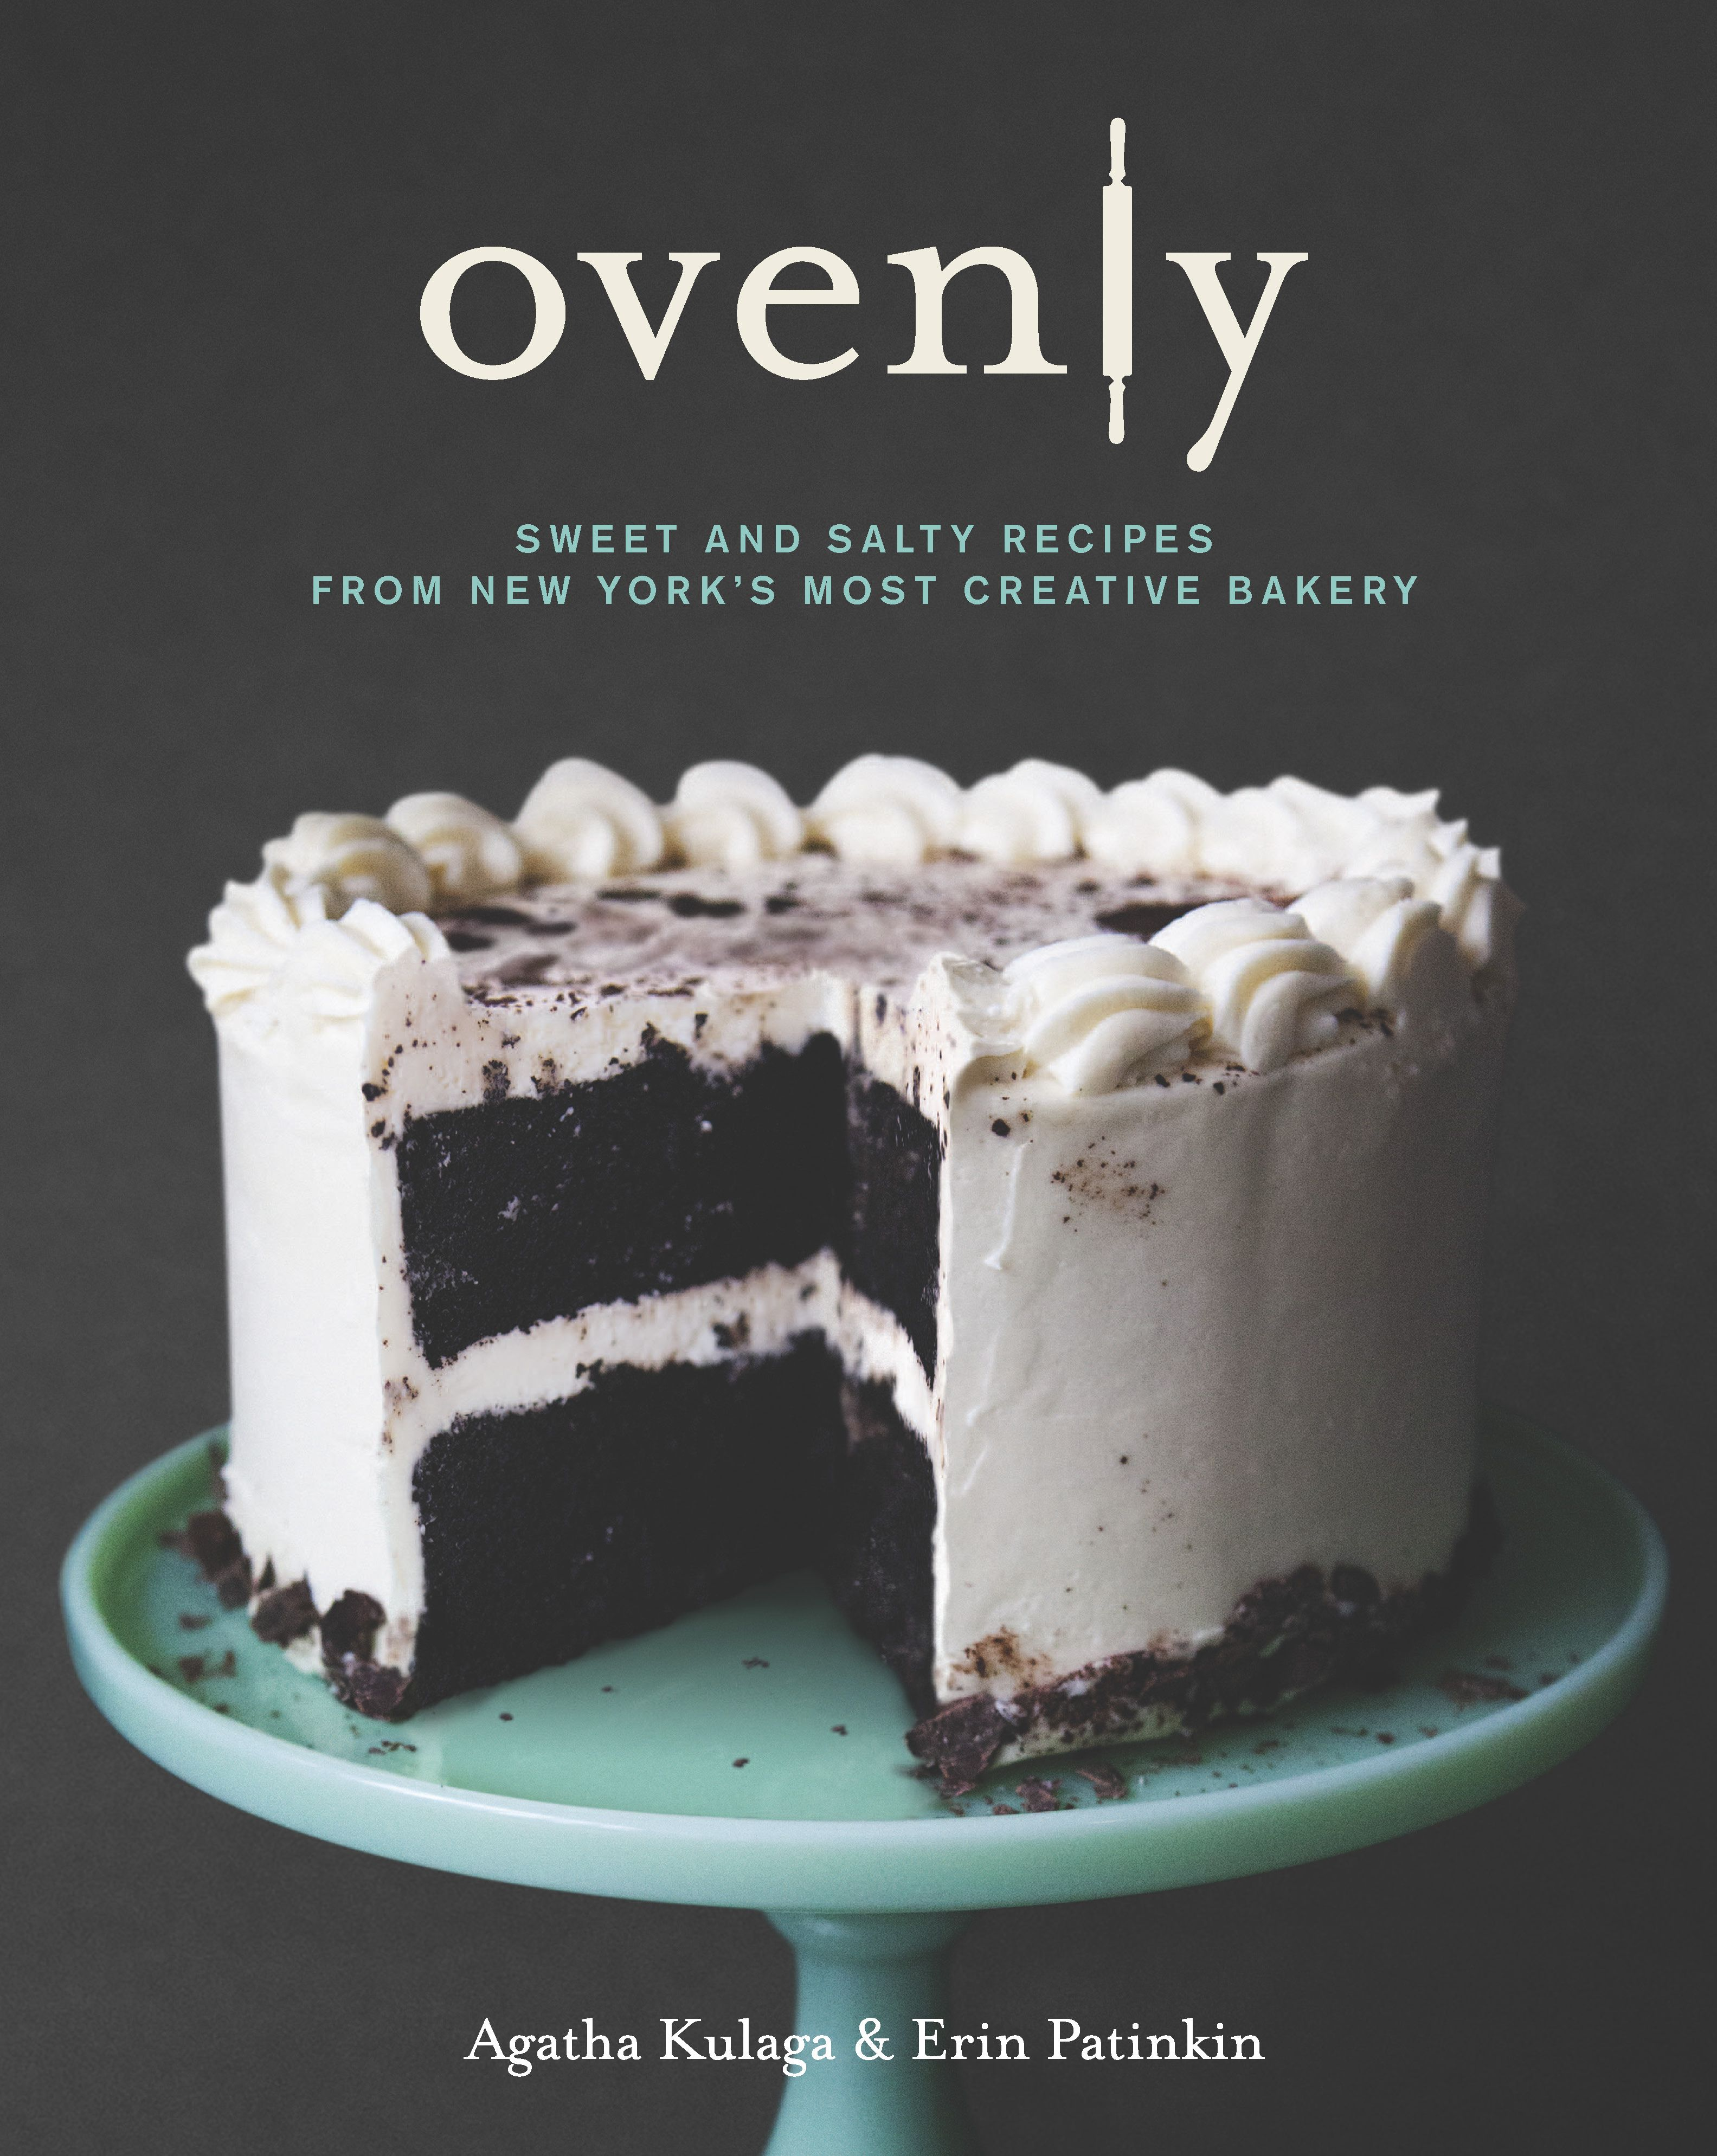 Ovenly | Bakeries, Recipes and Books